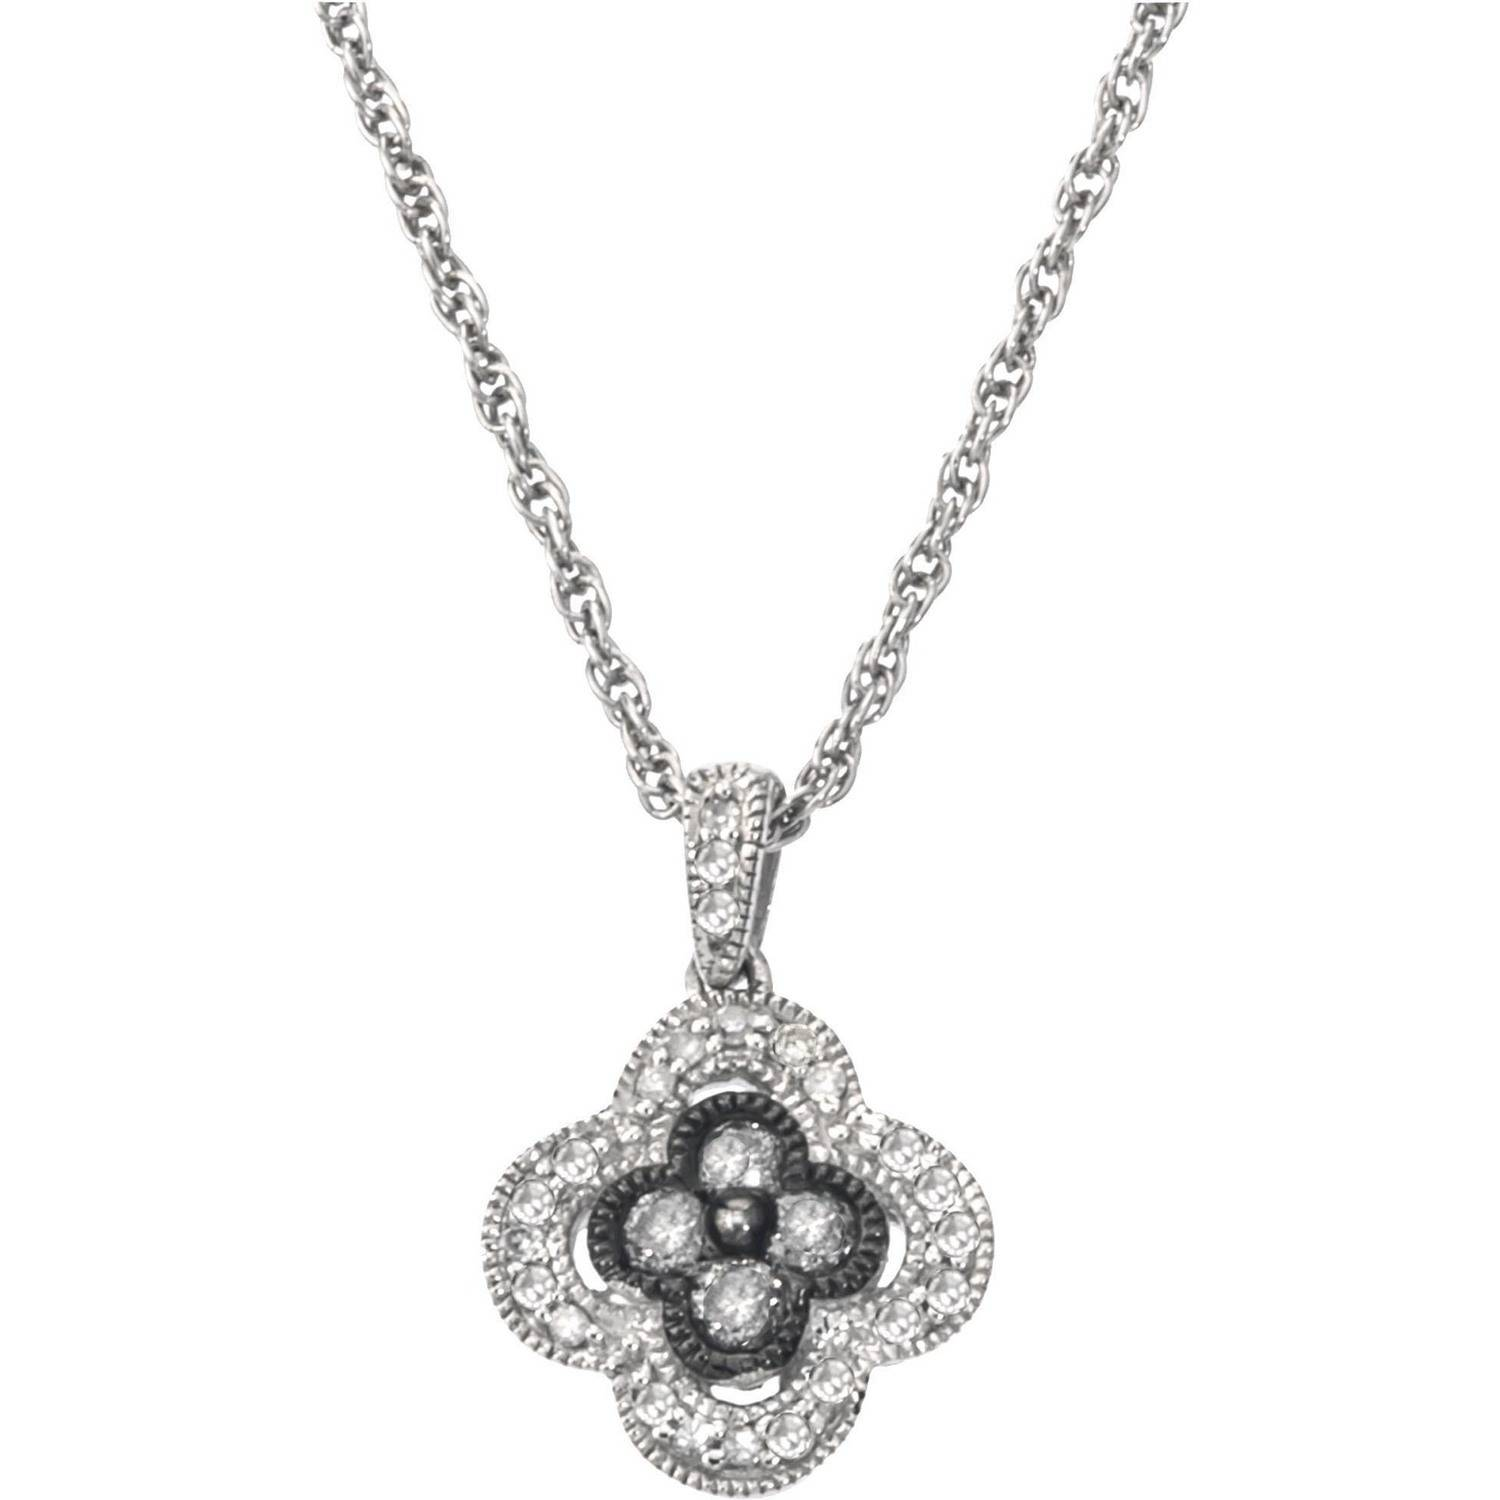 0.25 Carat T.W. Diamond Sterling Silver Clover Necklace (H-I, I2 and Grey Diamonds) by Generic